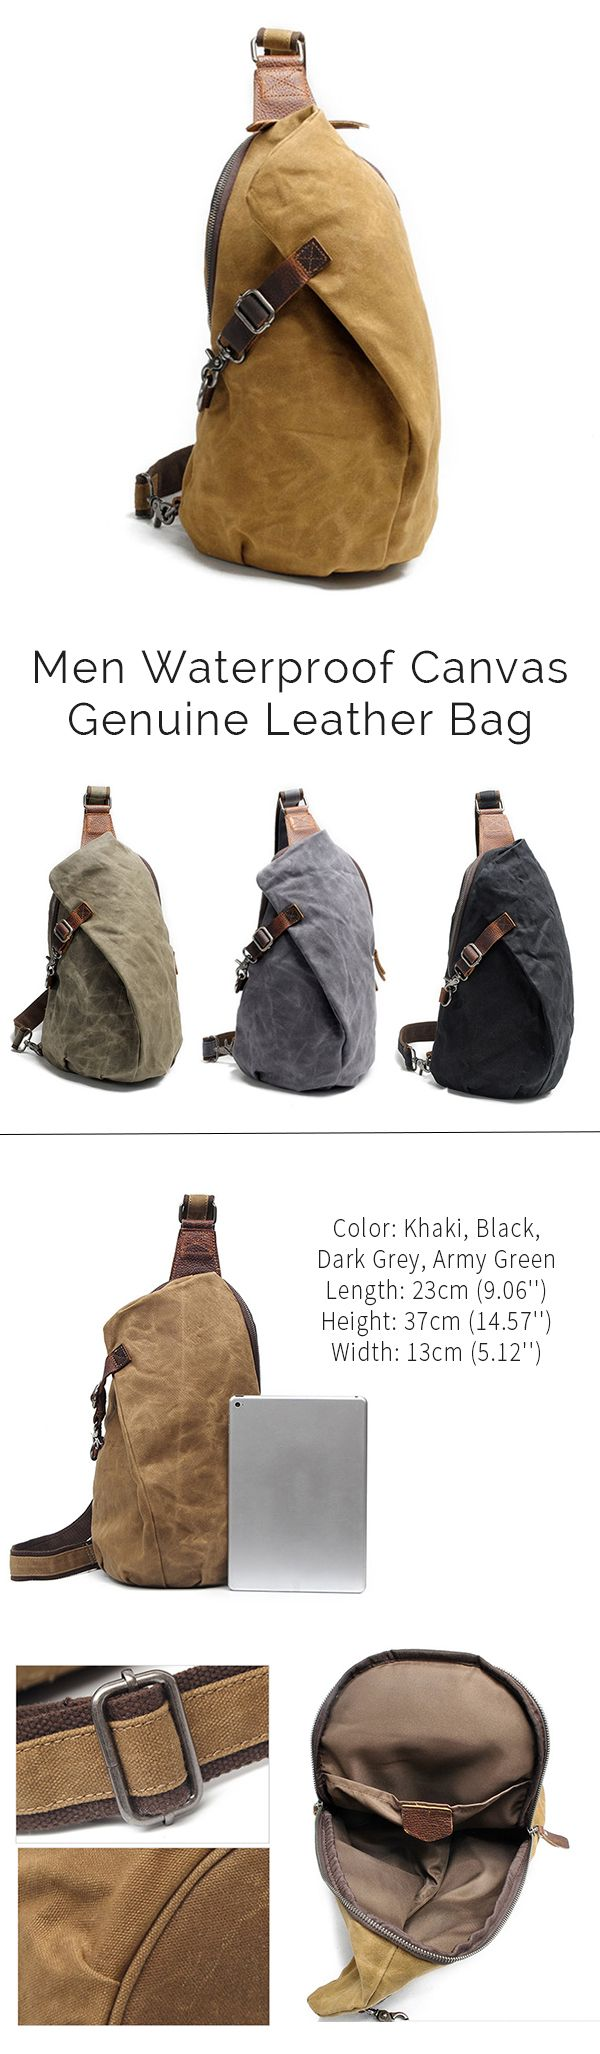 Waterproof Canvas Leather Chest Bag /Crossbody Bag #style